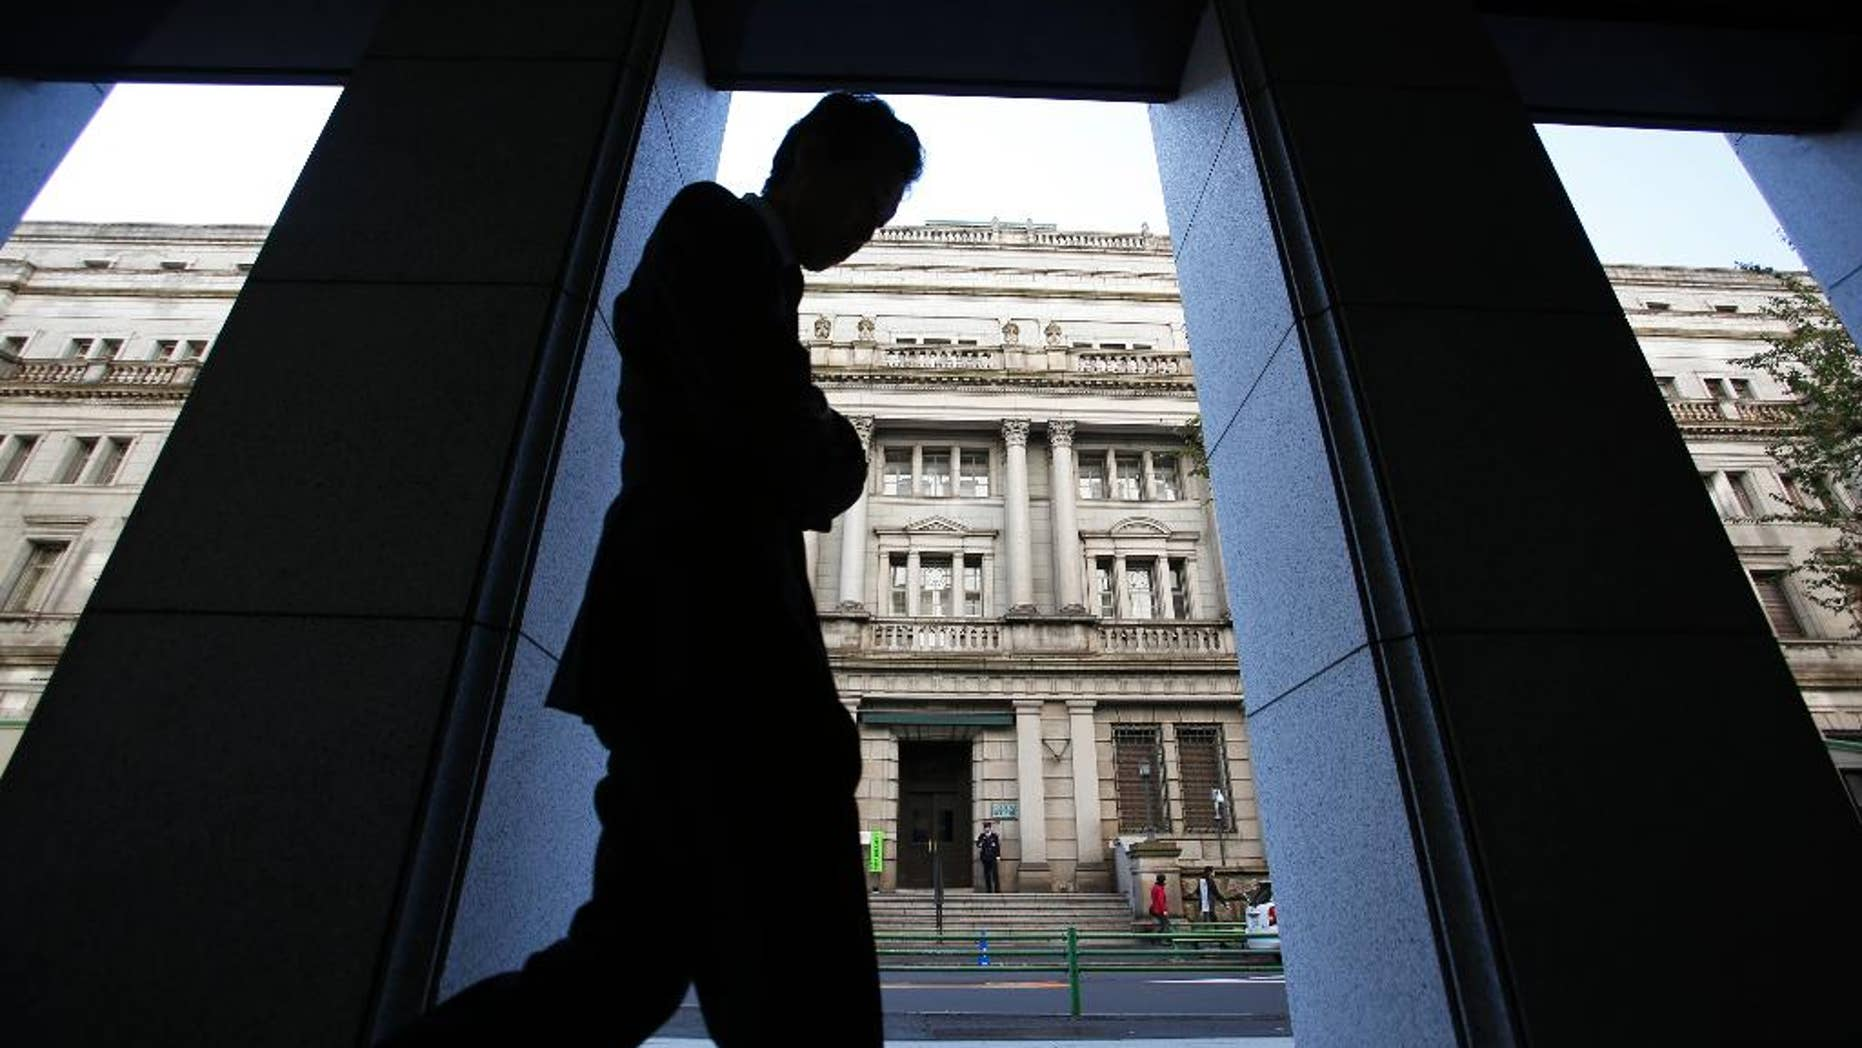 FILE - In this Nov. 19, 2014 file photo, a man walks in front of the Bank of Japan headquarters in Tokyo. Japan's latest data show the economy grew at a real annualized rate of 1.5 percent in October-December, slower than earlier reported but still reaffirming an end to recession. (AP Photo/Shizuo Kambayashi, File)